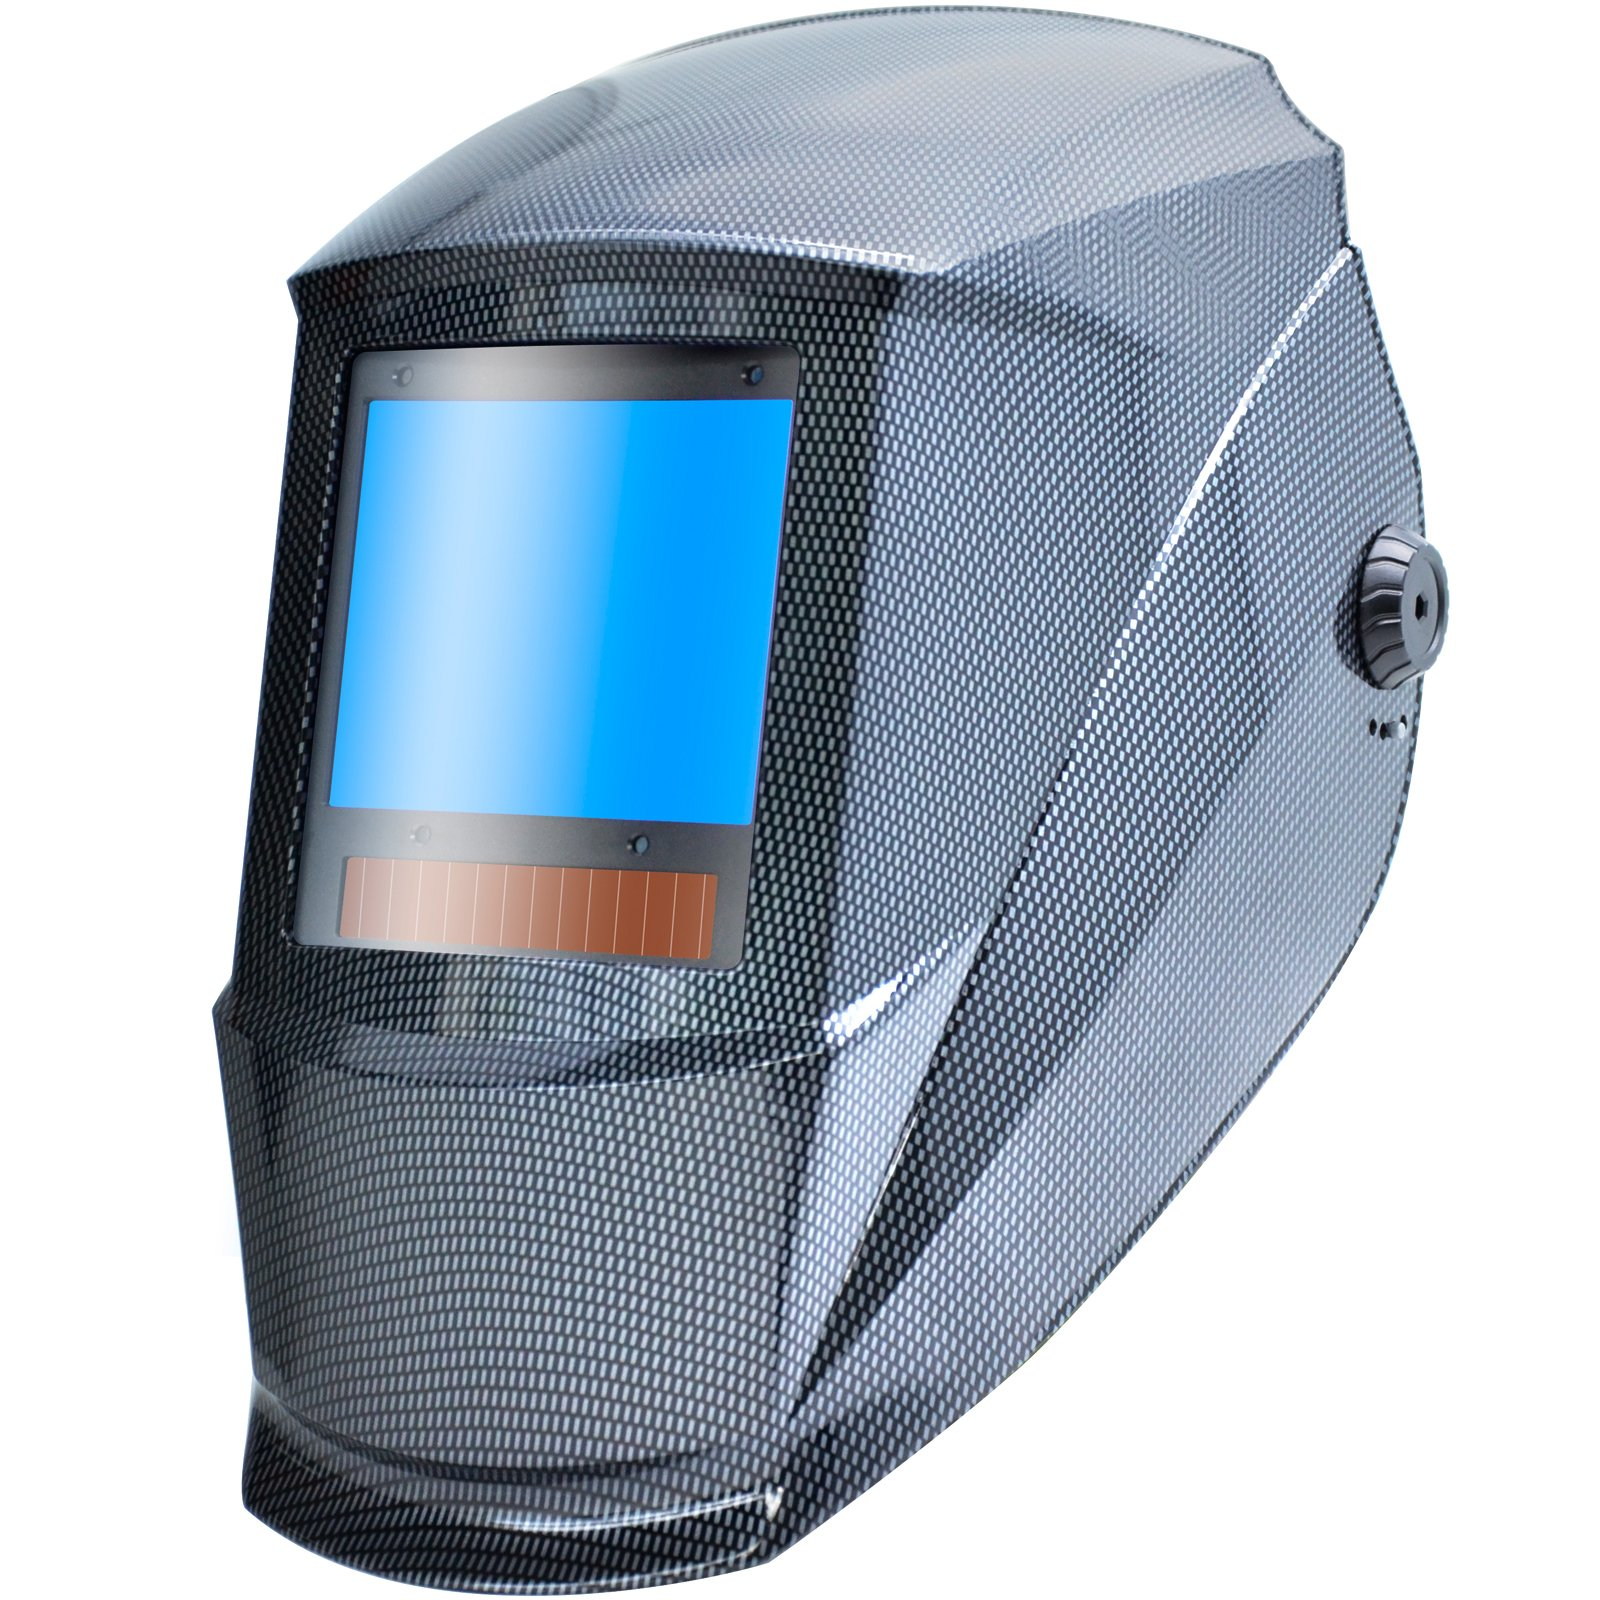 Antra AH7-X90-001X   TOP Optical Class 1/1/1/1 Digital Controlled Solar Powered Auto Darkening Welding Helmet Wide Shade 4/5-9/9-13 by Antra